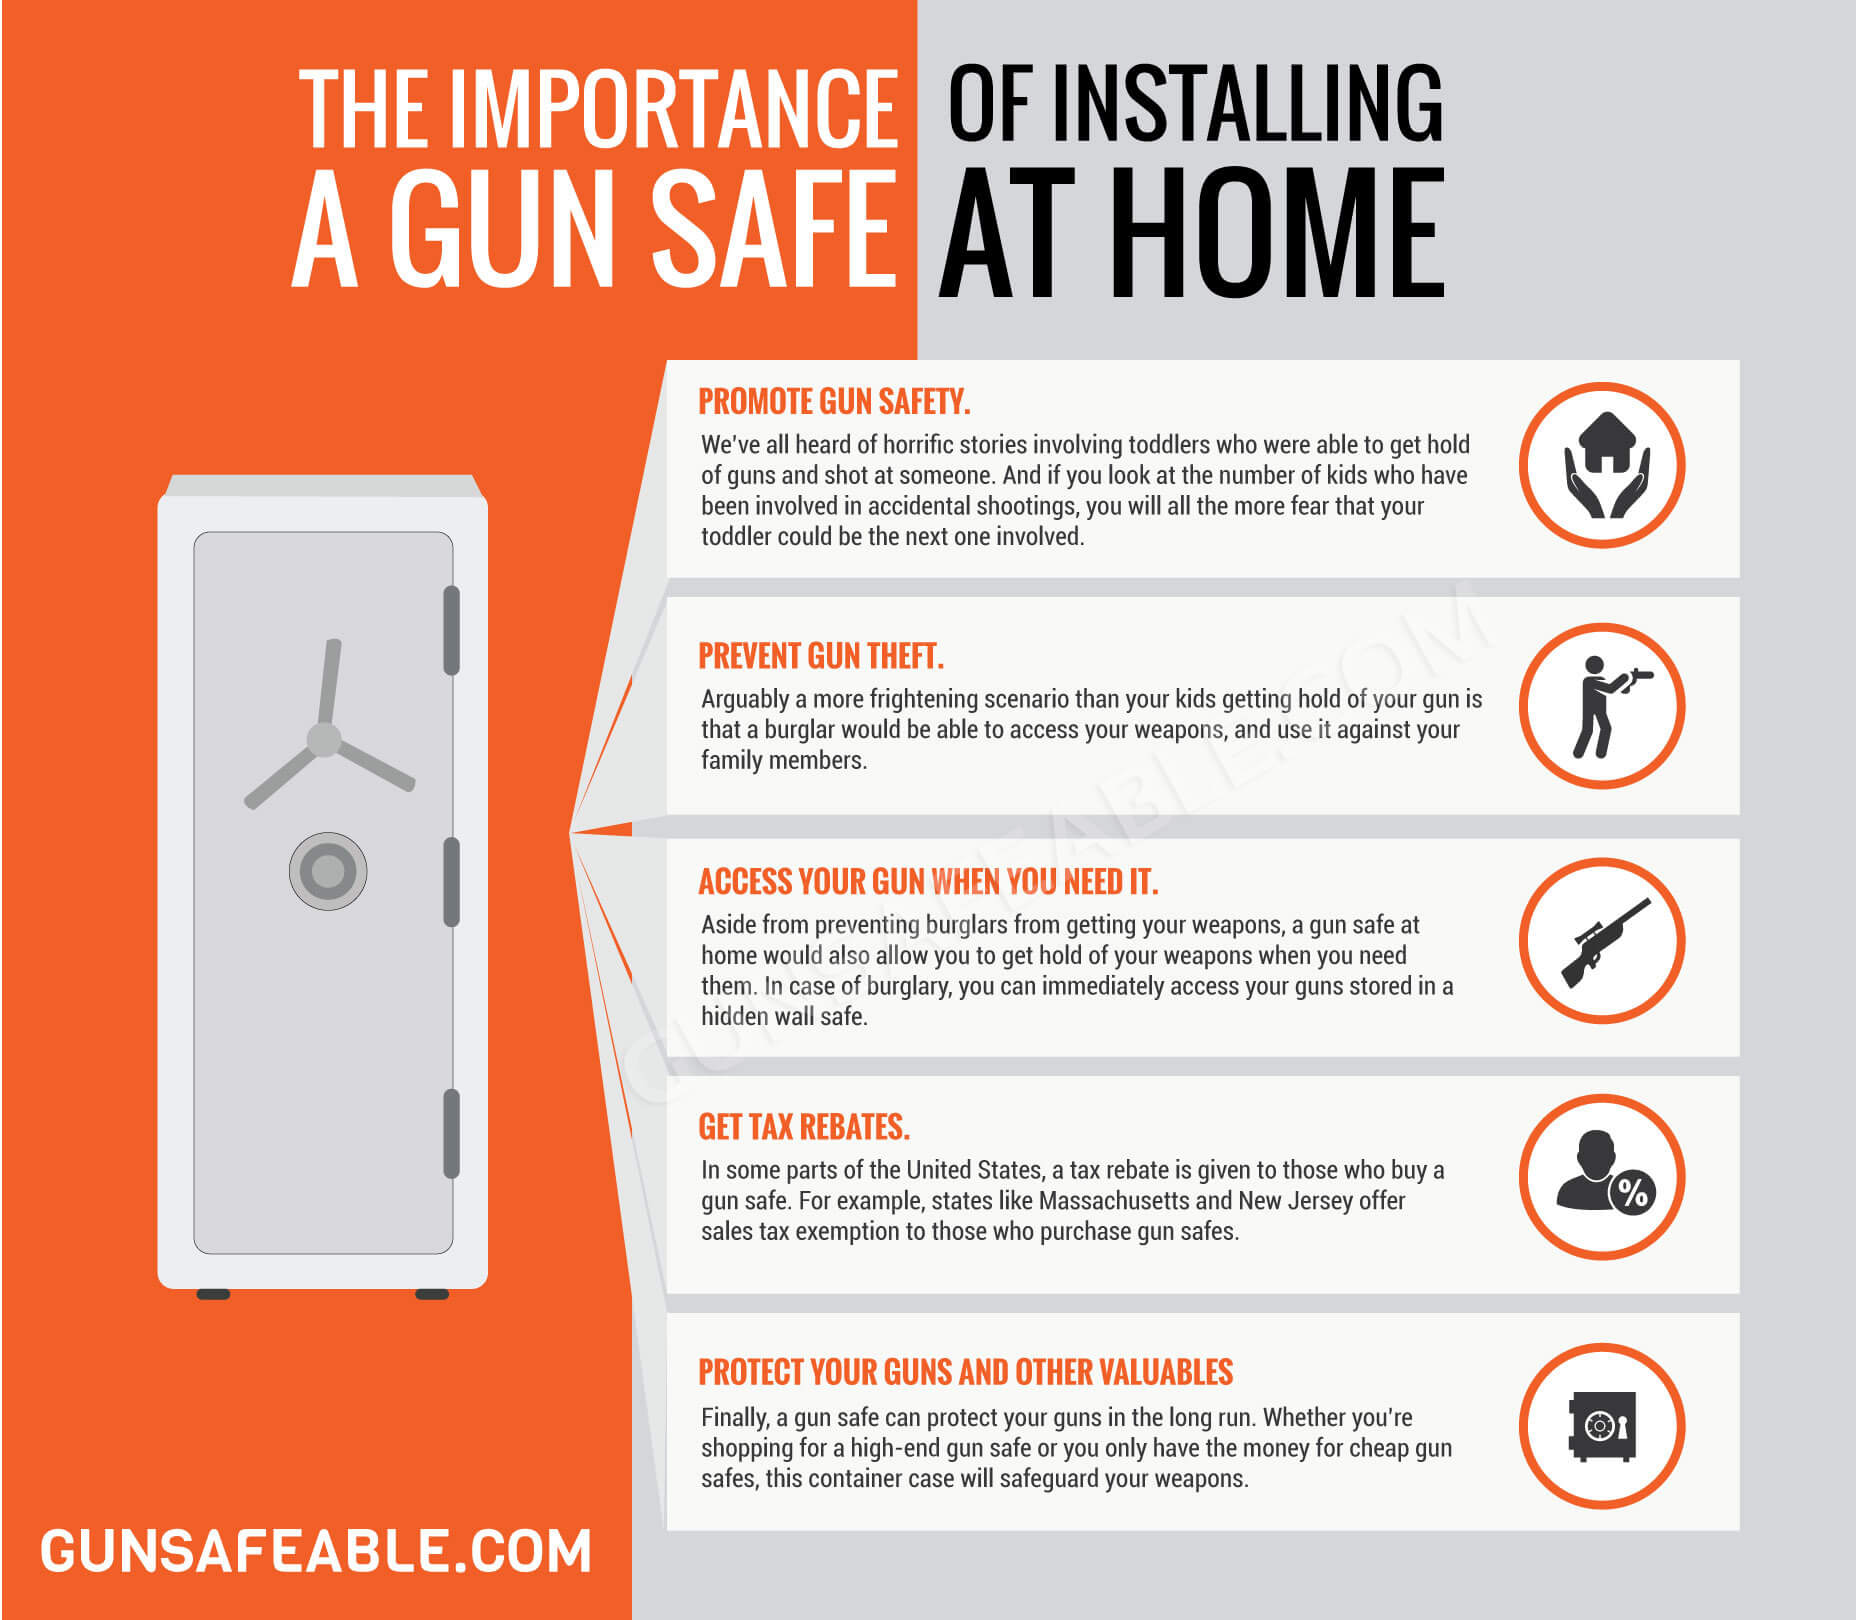 [INFOGRAPHIC] The Importance of Installing a Gun Safe at Home